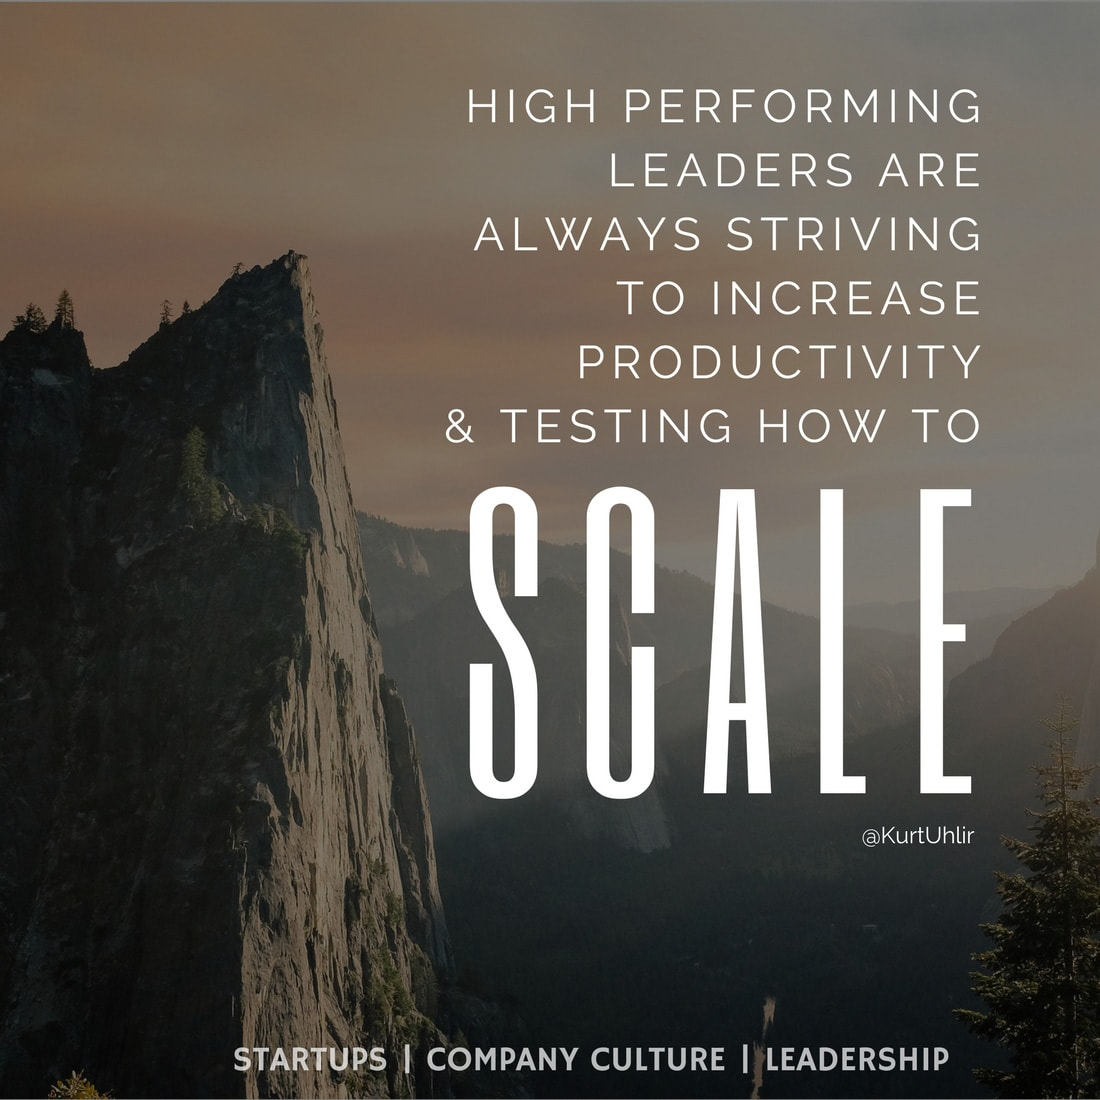 High performing leaders are always striving to increase productivity & testing how to scale - Kurt Uhlir quote | Leadership | Motivation | Entrepreneurship